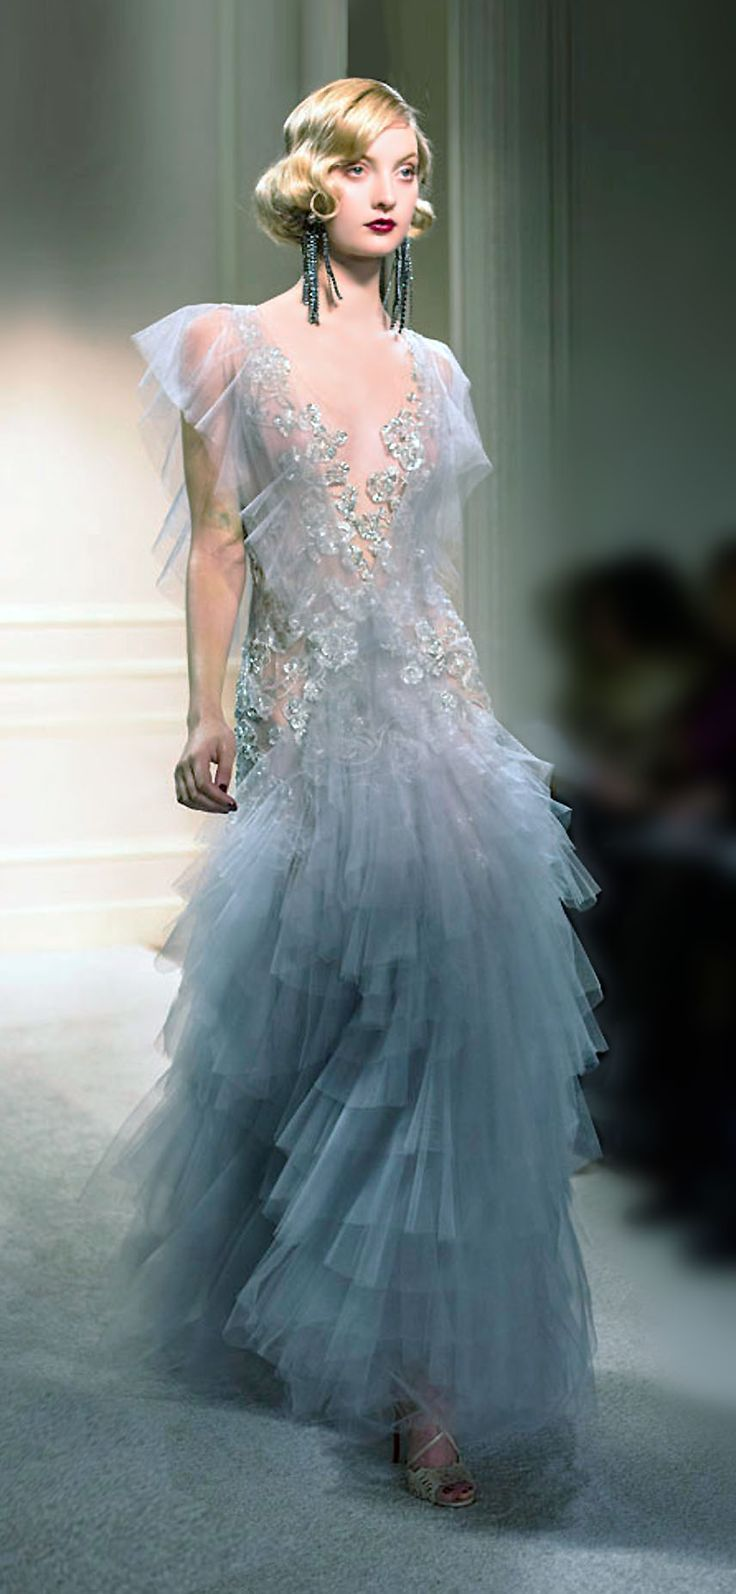 129 best Fave Project Runway and Marchesa Frocks images on Pinterest ...